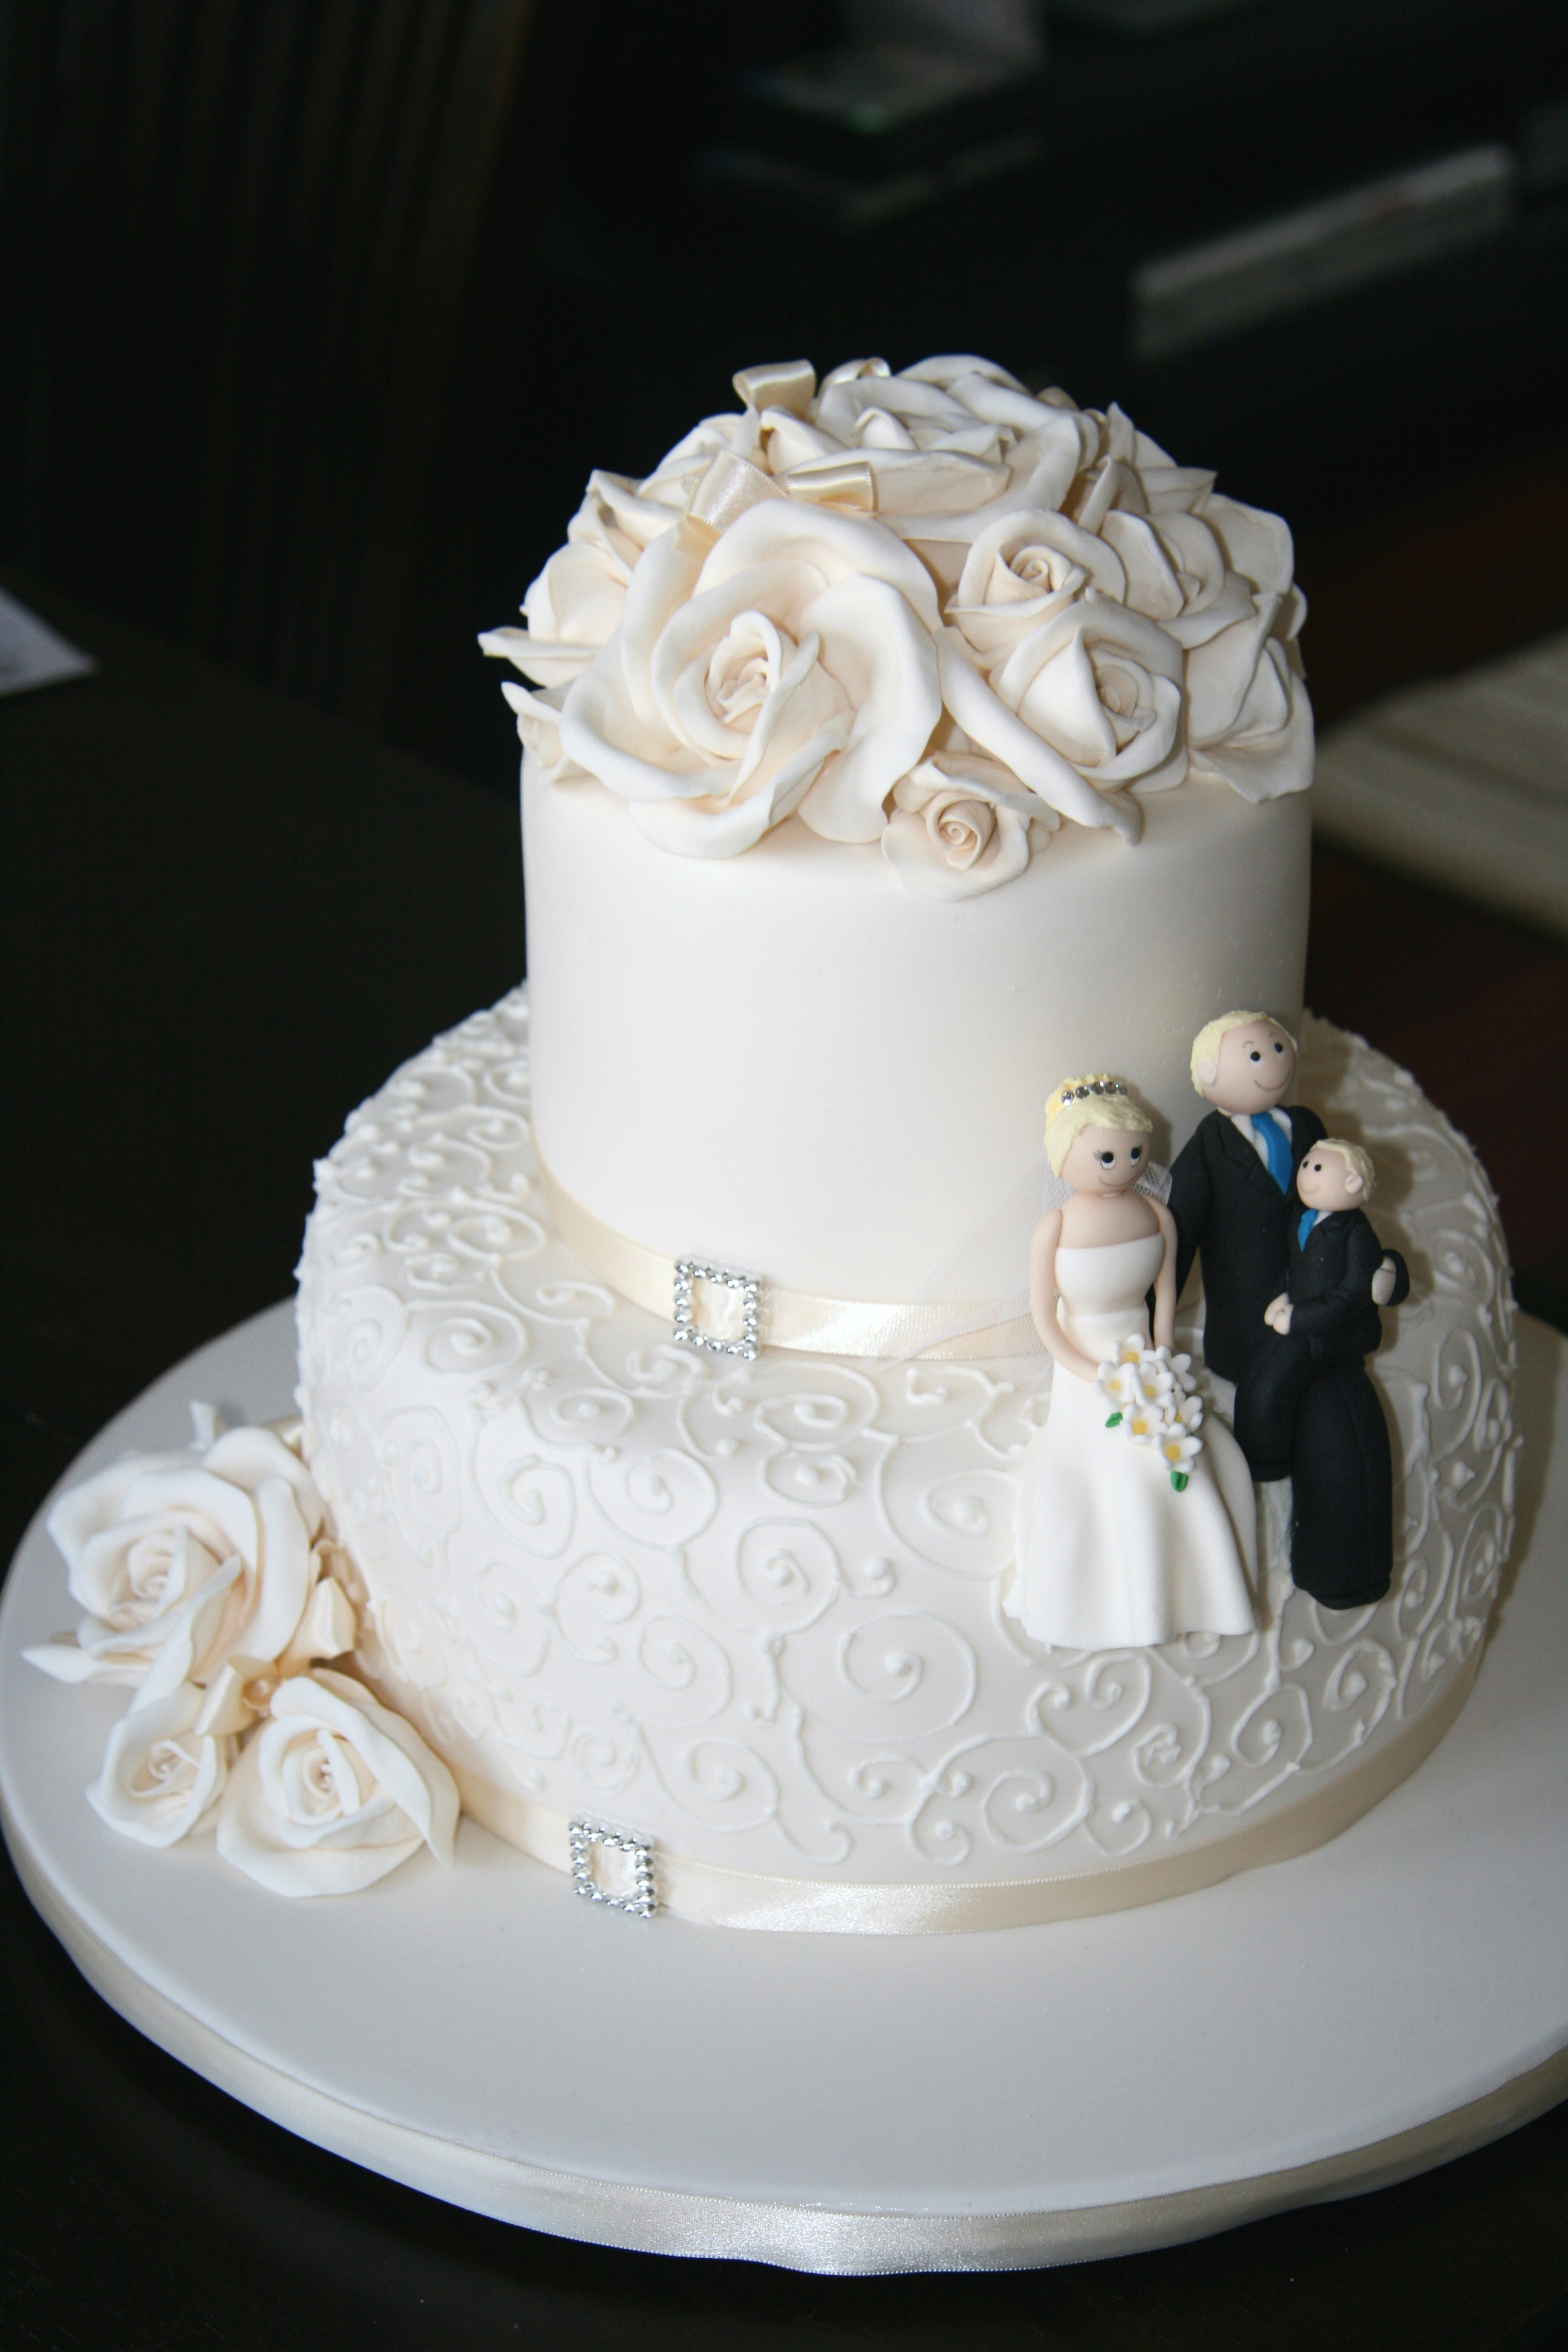 Two Tier Wedding Cakes  25 CUTE SMALL WEDDING CAKES FOR THE SPECIAL OCCASSION